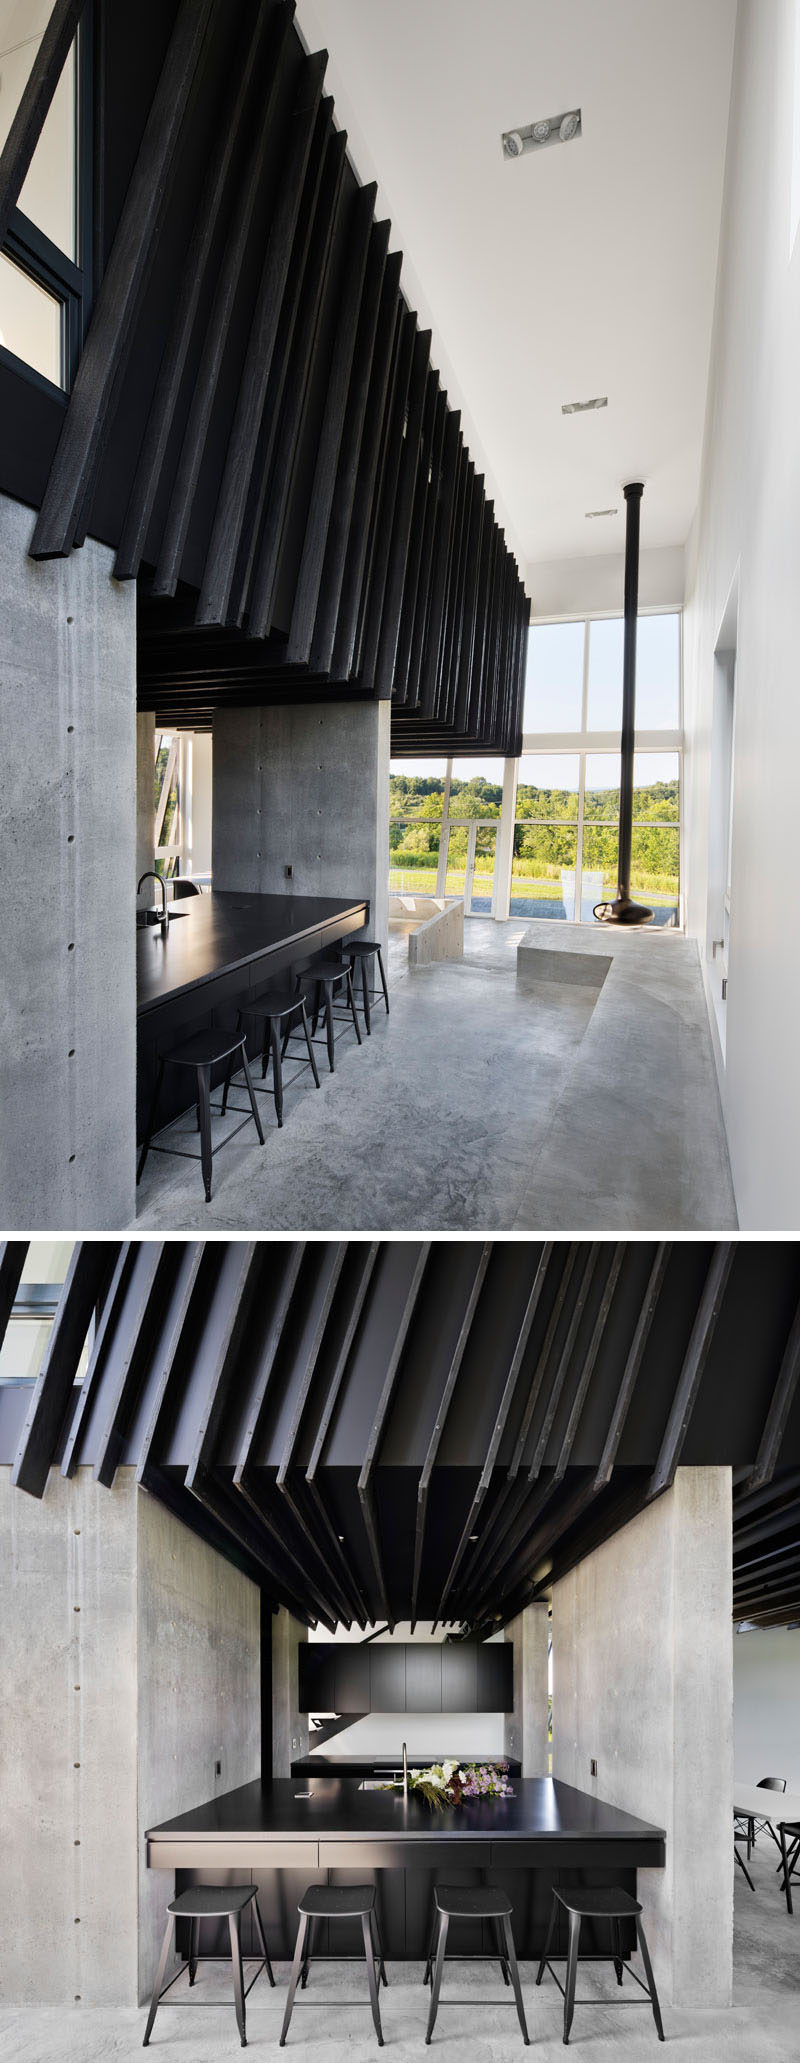 Inside this modern house, which was designed as a weekend escape from the city, the Shou Sugi Ban siding continues and creates a strong contrast to the white walls and polished concrete flooring. In the kitchen, minimalist black cabinets and countertops compliment the other black details in the interior. #ShouSugiBan #ModernHouseInterior #ConcreteFlooring #BlackKitchen